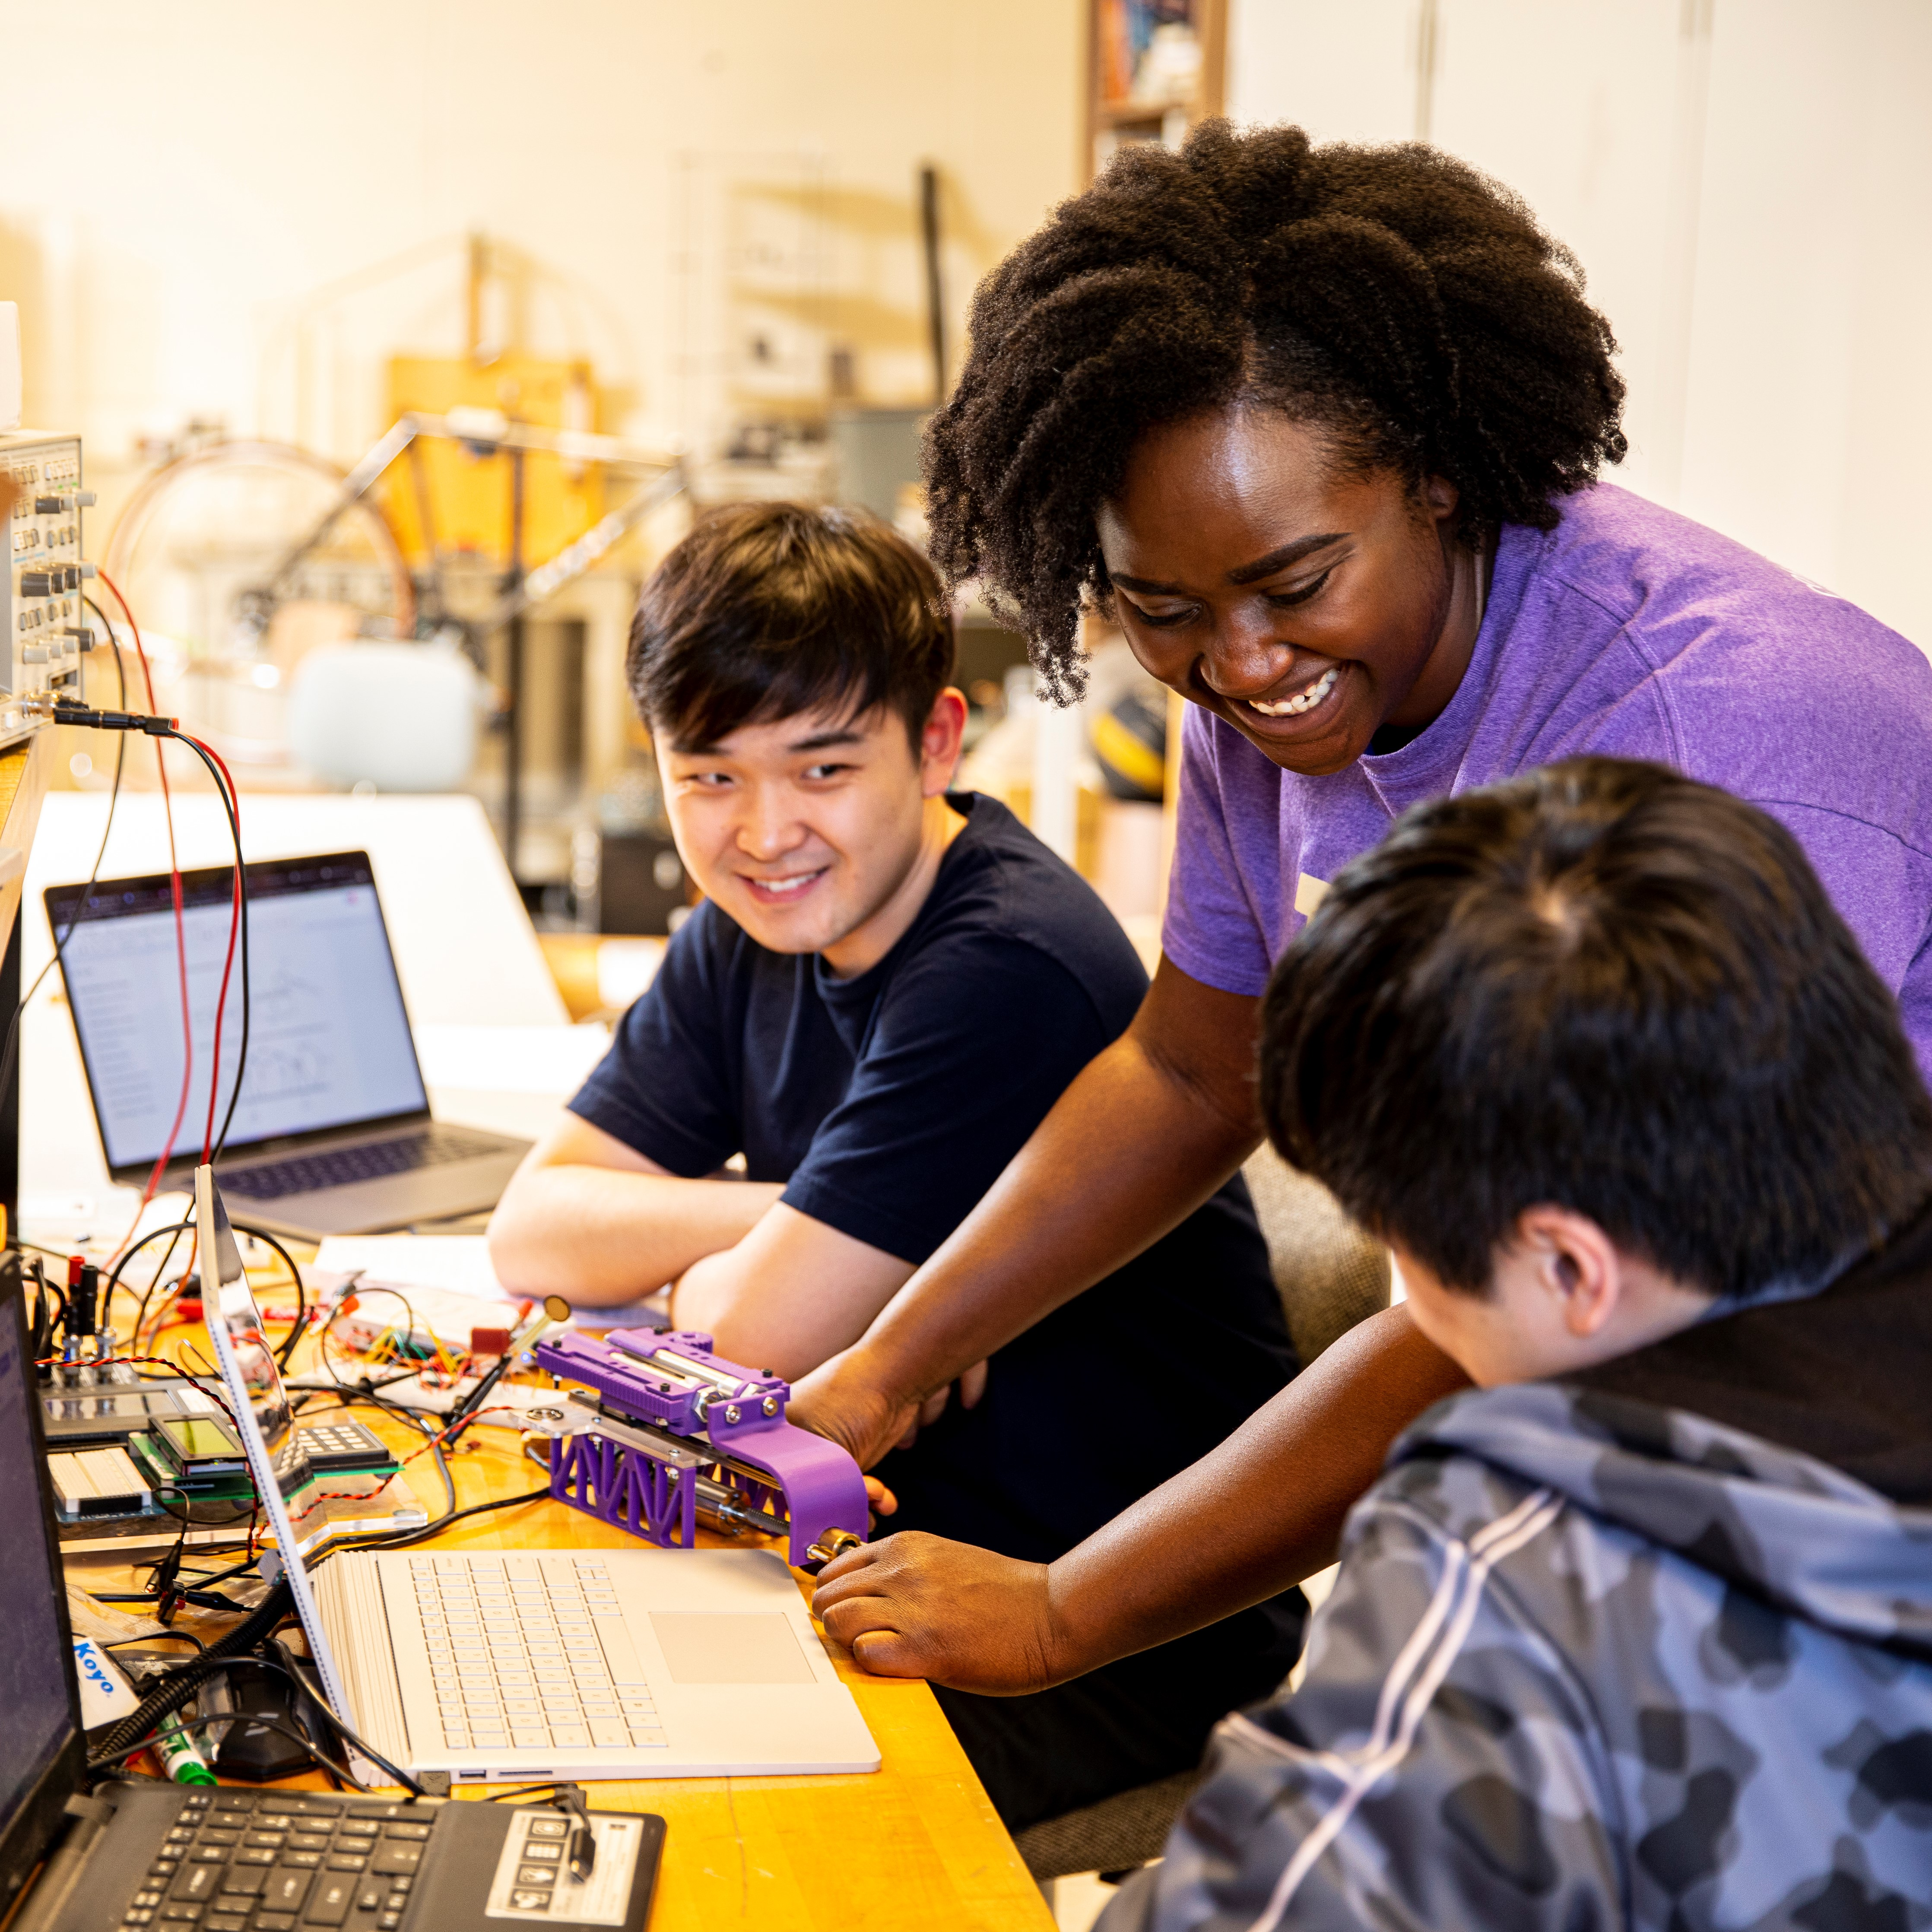 Image of students working on a mechanical engineering project